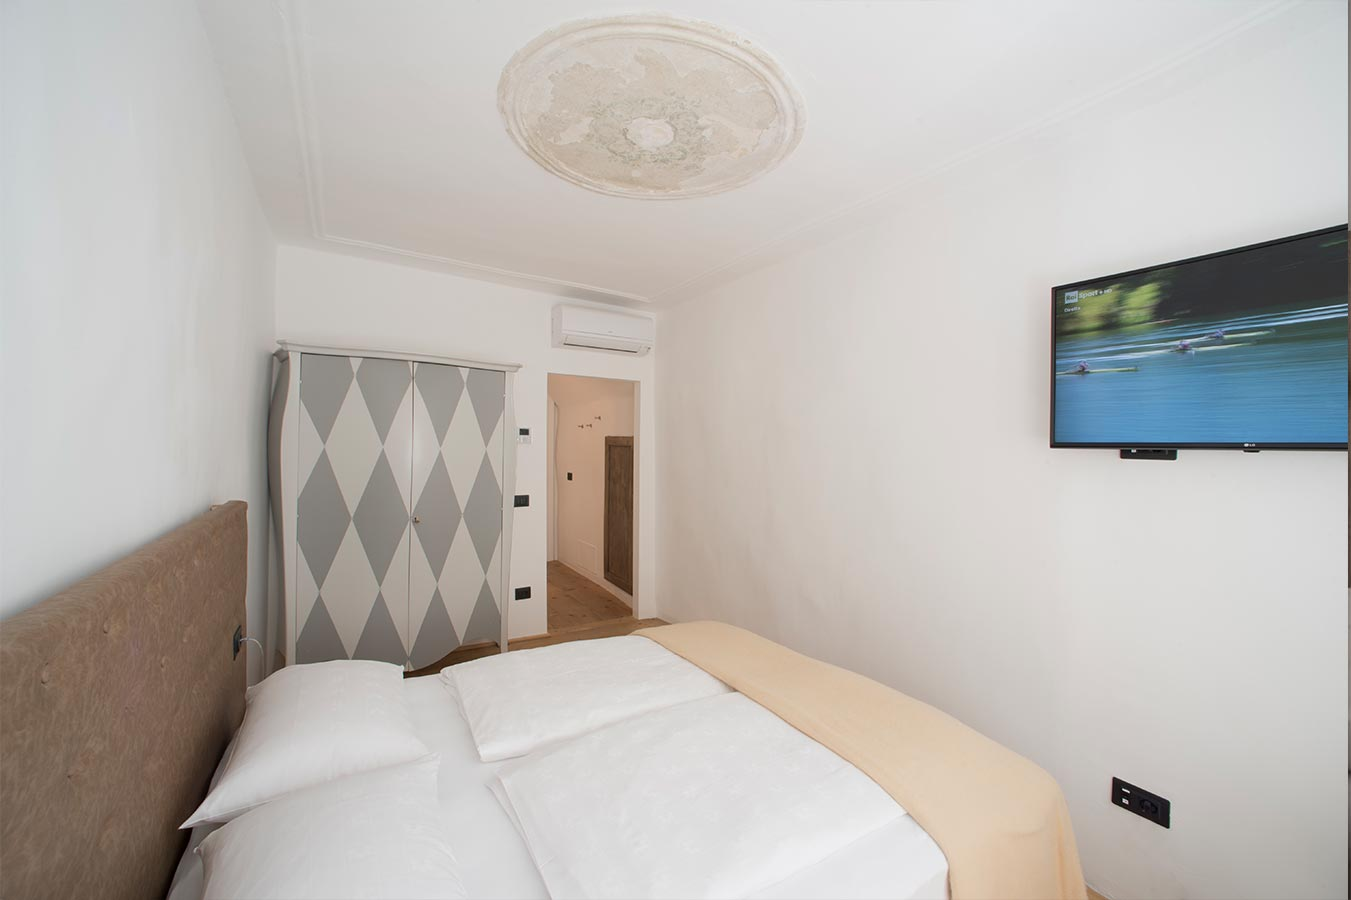 Bed And Breakfast In Bolzano Italy Welcome To Sir Thomas